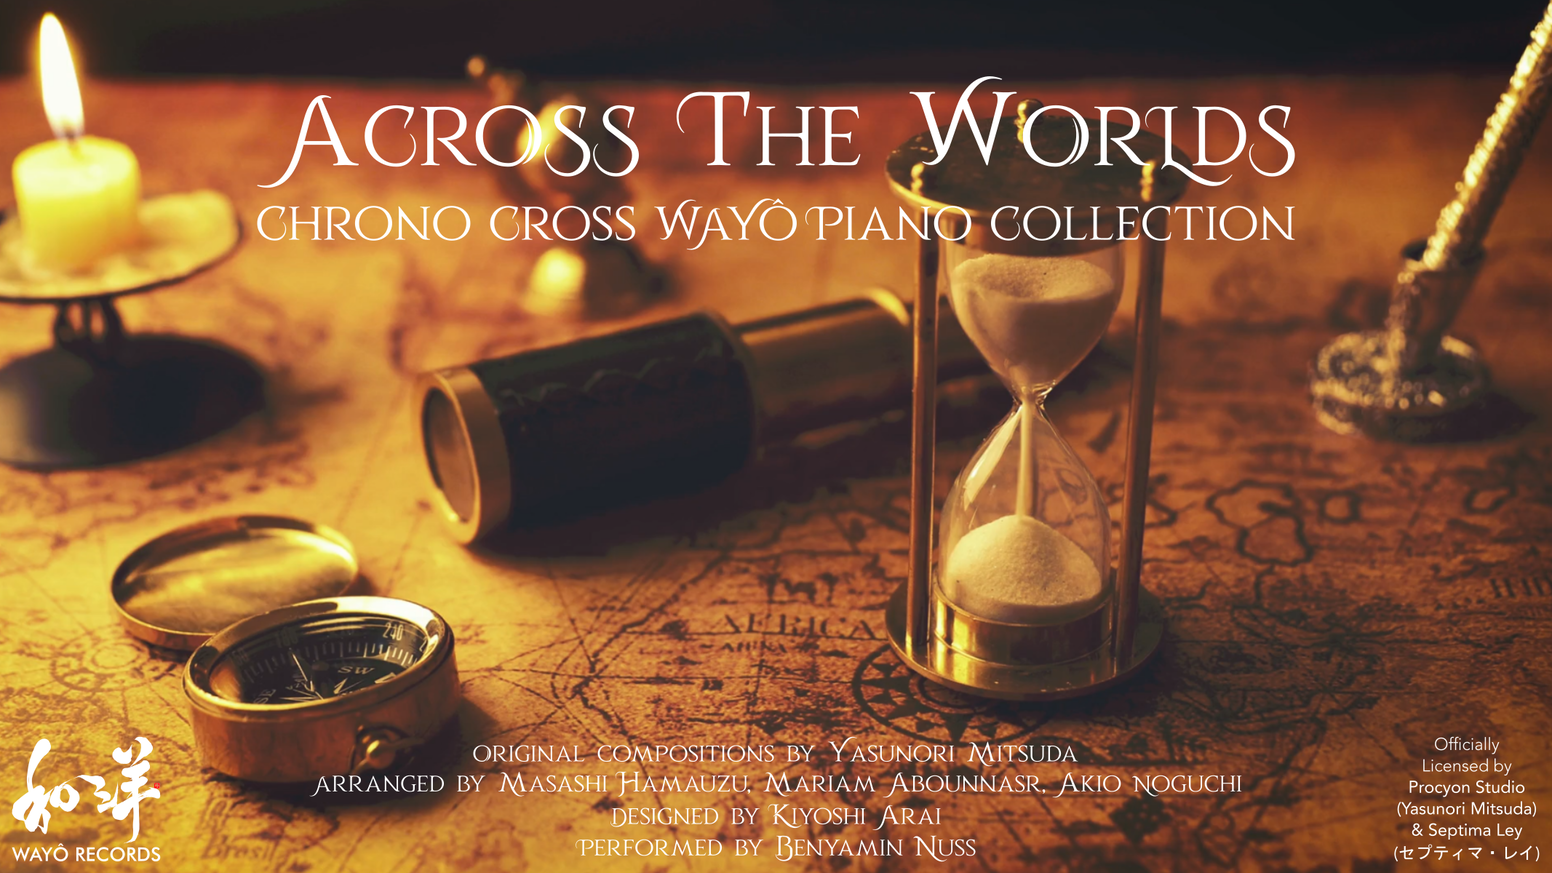 Album based on the music of the famous RPG Chrono Cross, created with some of the best Japanese video game artists.